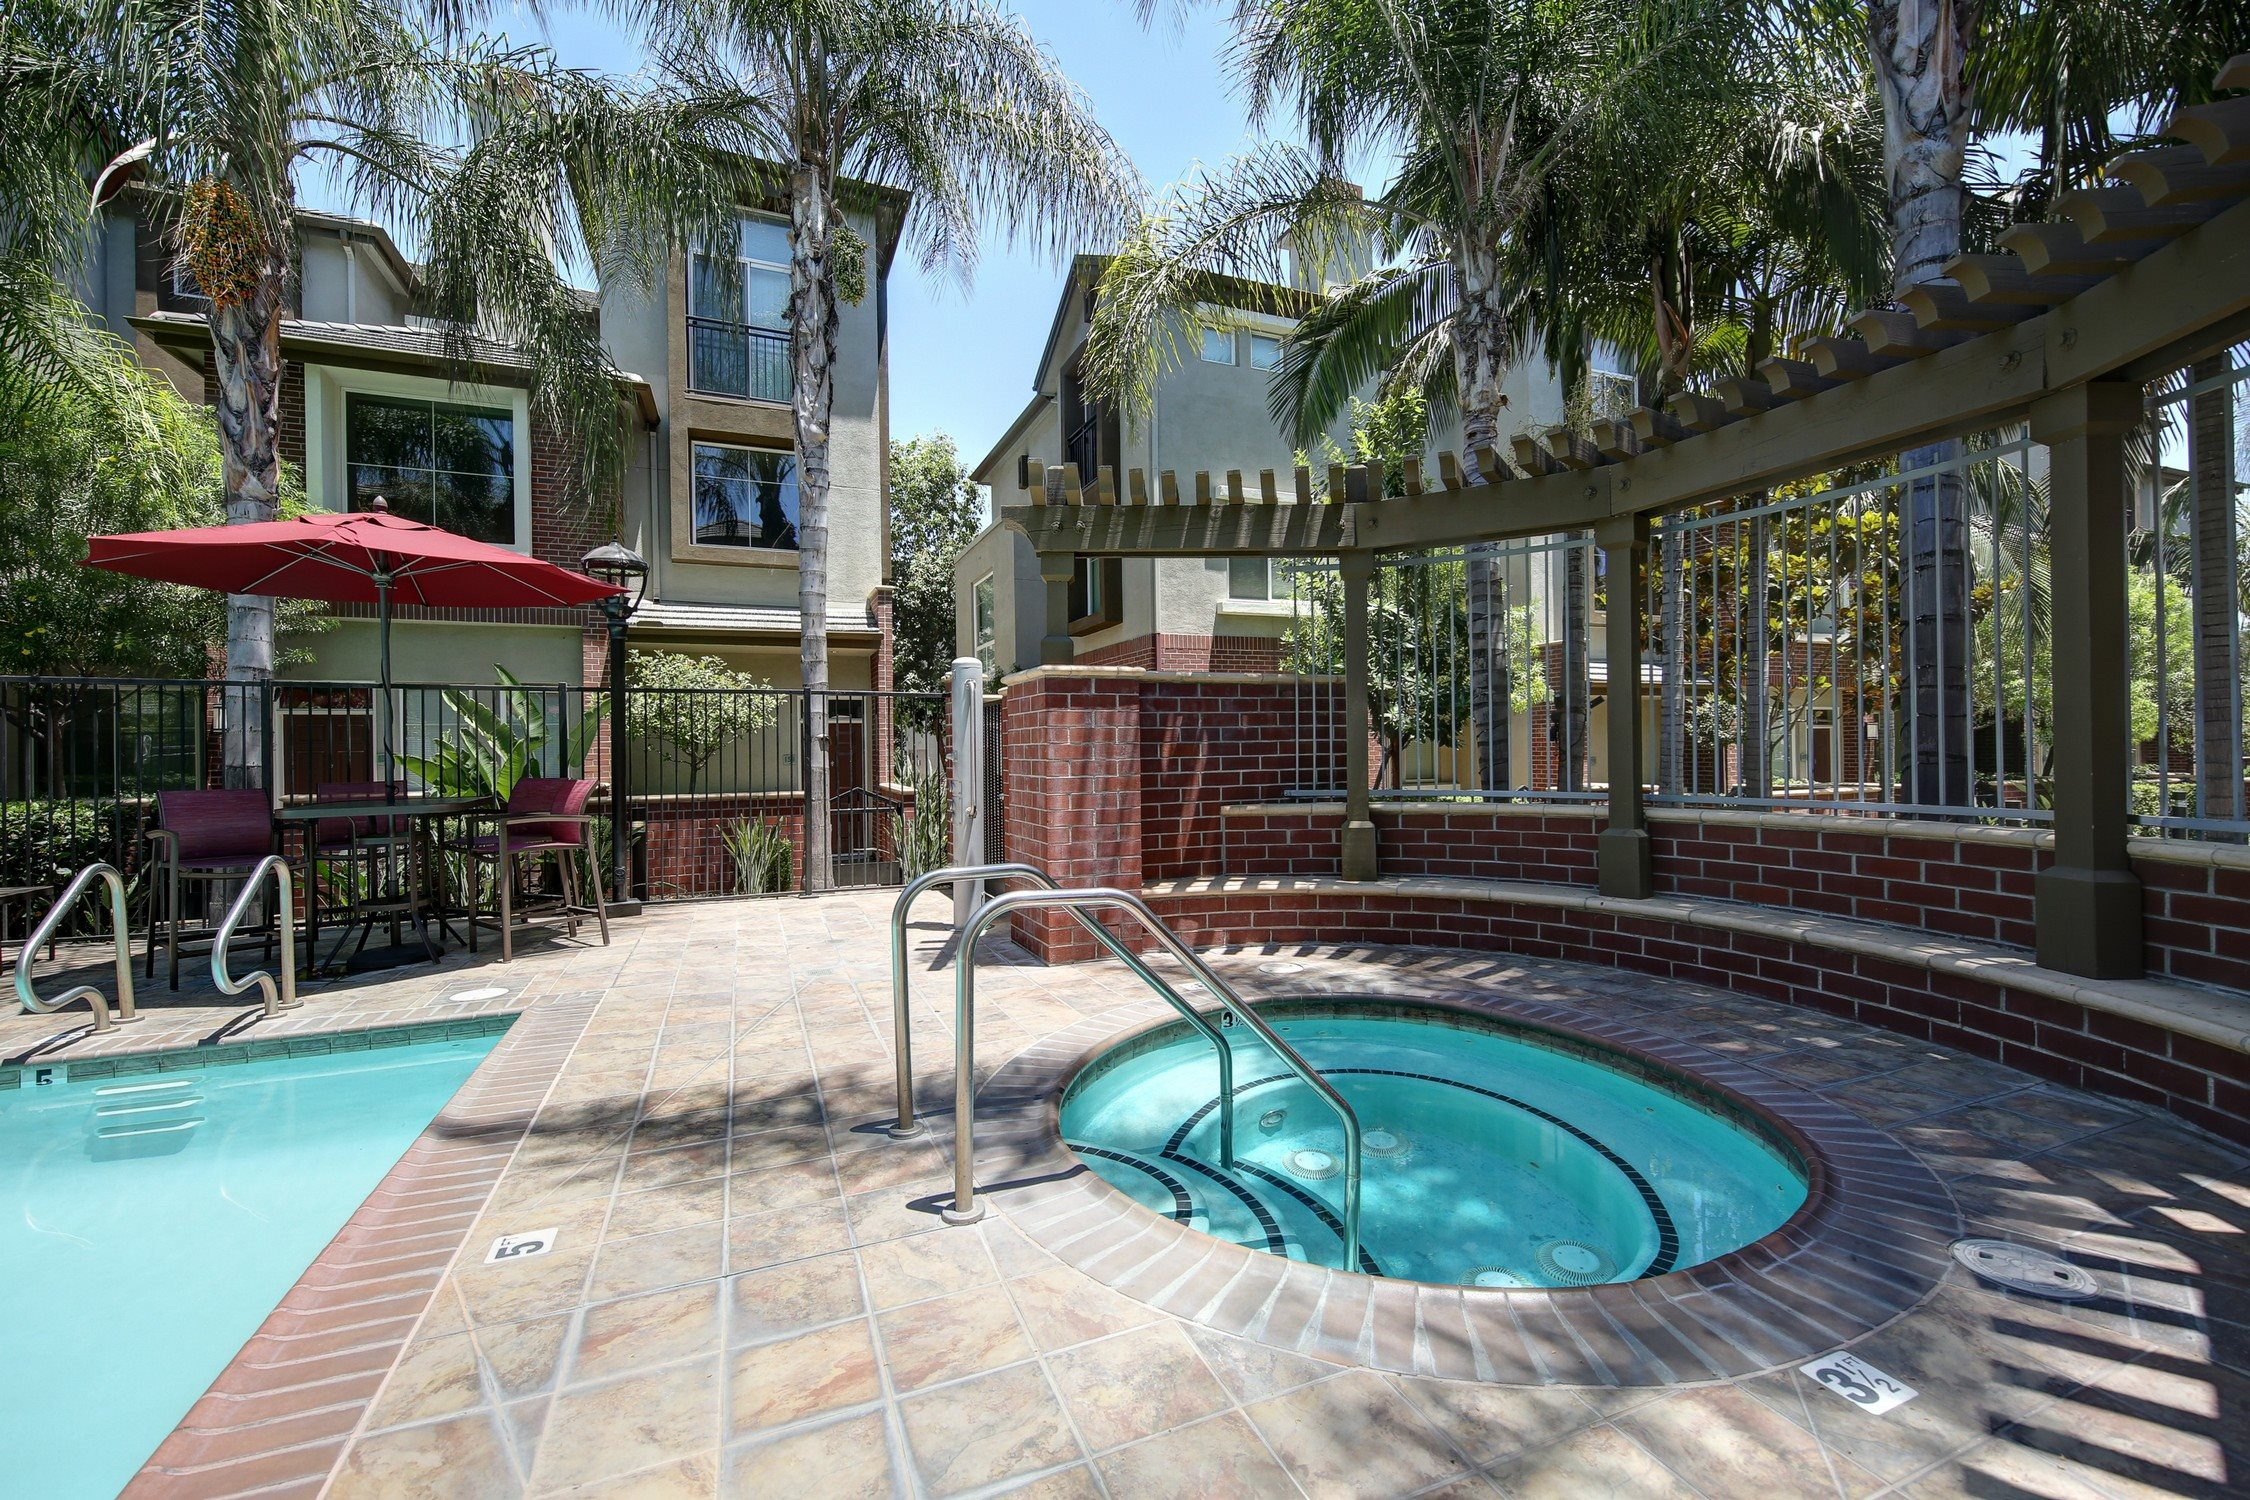 Heated Spa at Ontario Town Square Townhomes, Ontario, California